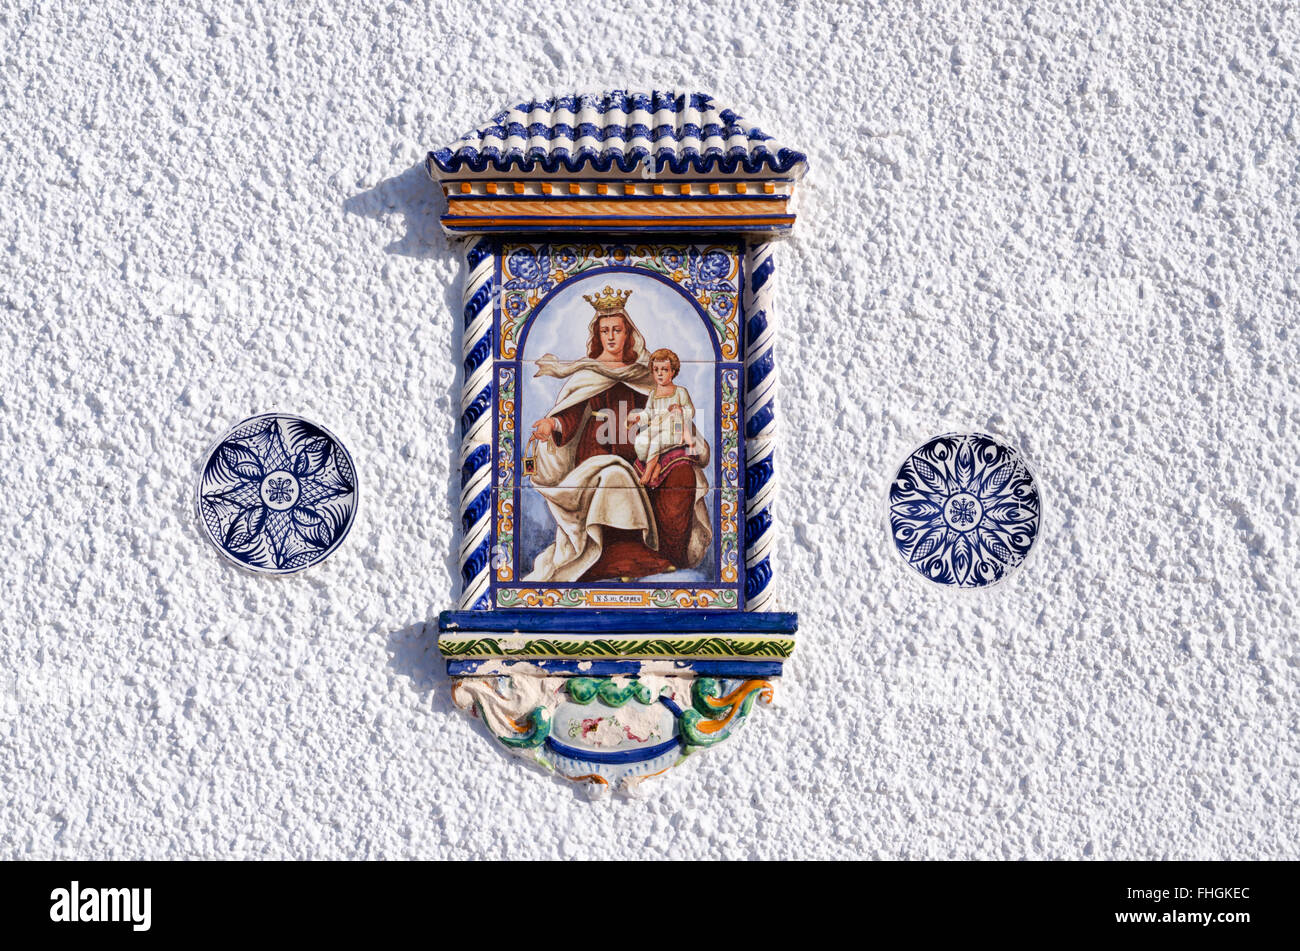 Decorative Christian Religion Wall Plaques On A White Washed House Wall    Depicting The Virgin